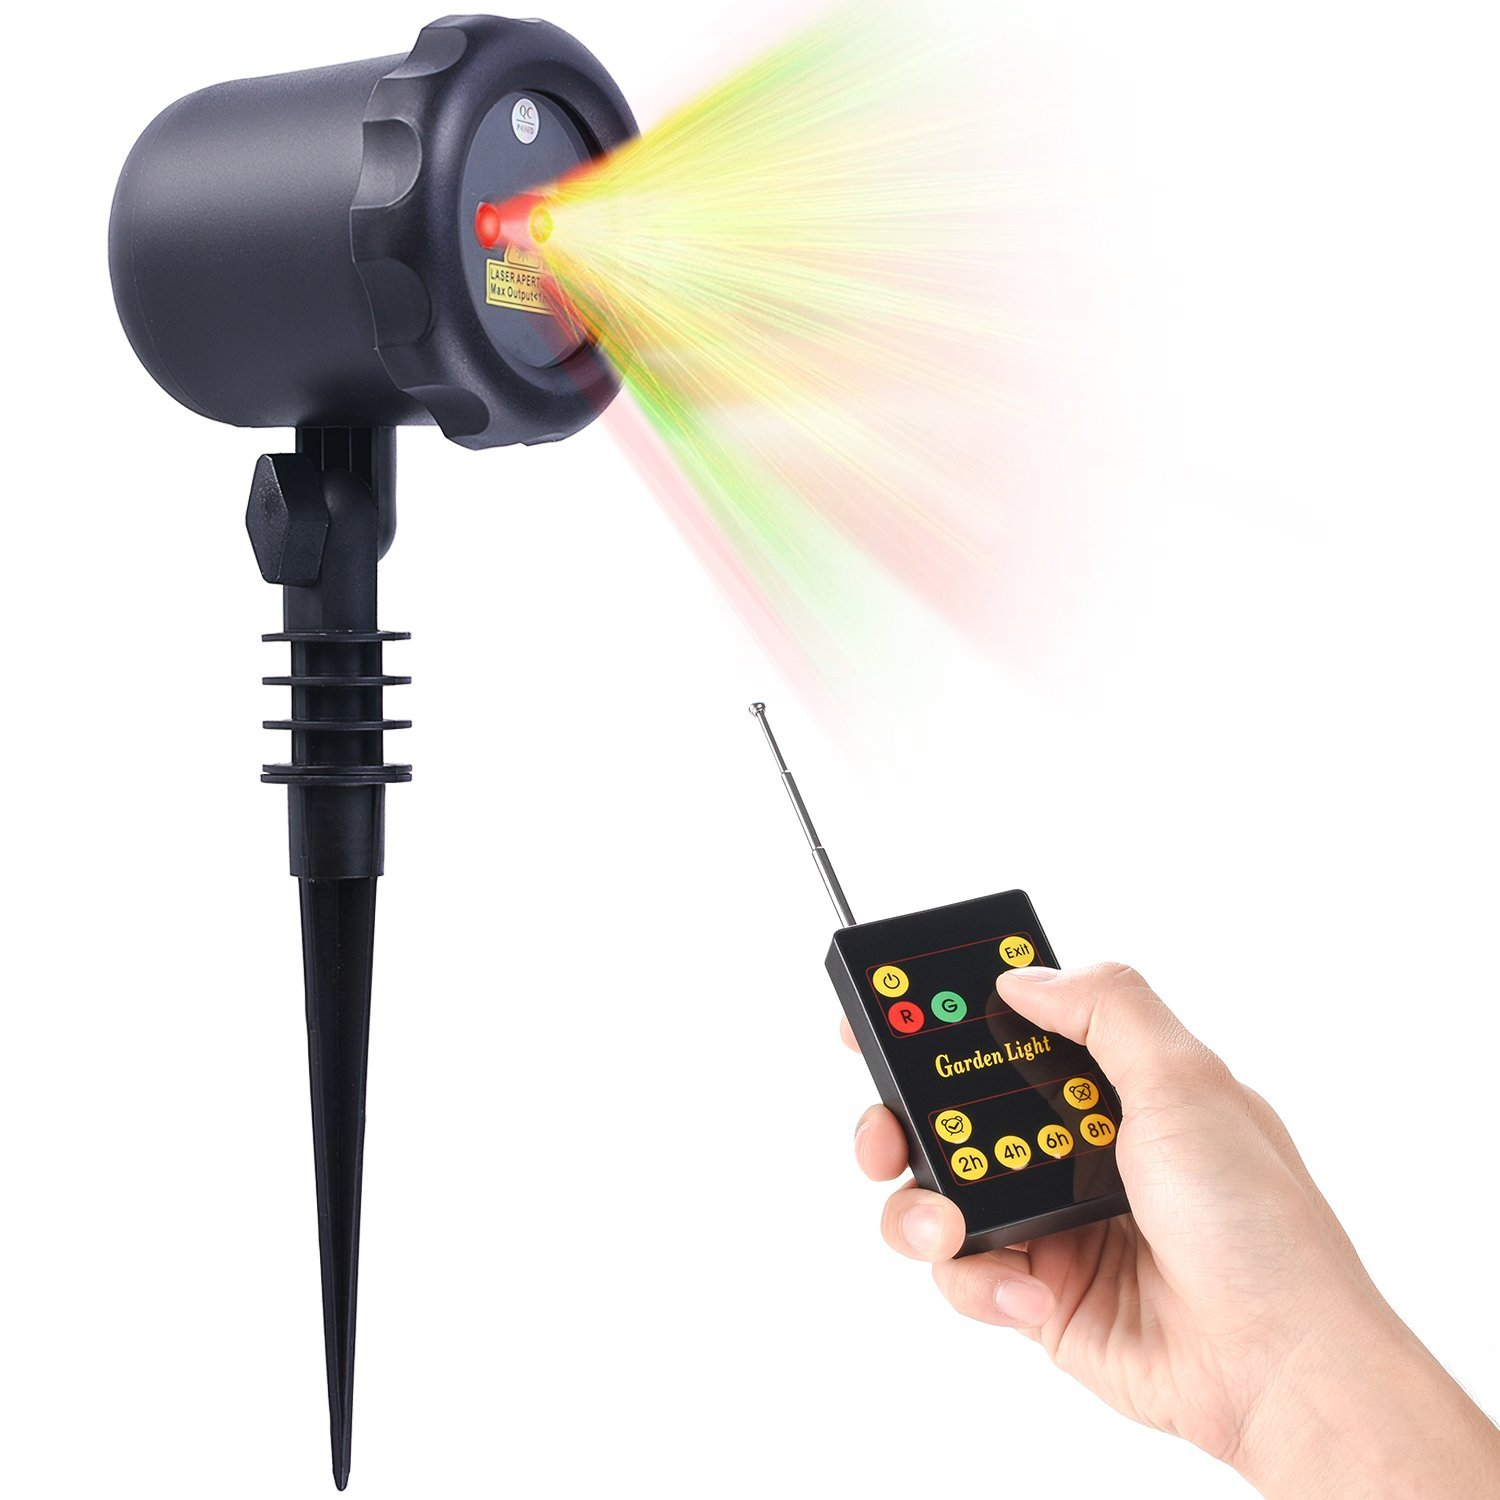 Beleef Laser Christmas Light with RF Remote Control - Waterproof Cold resistant, Outdoor and Indoor, 3 Colors Available